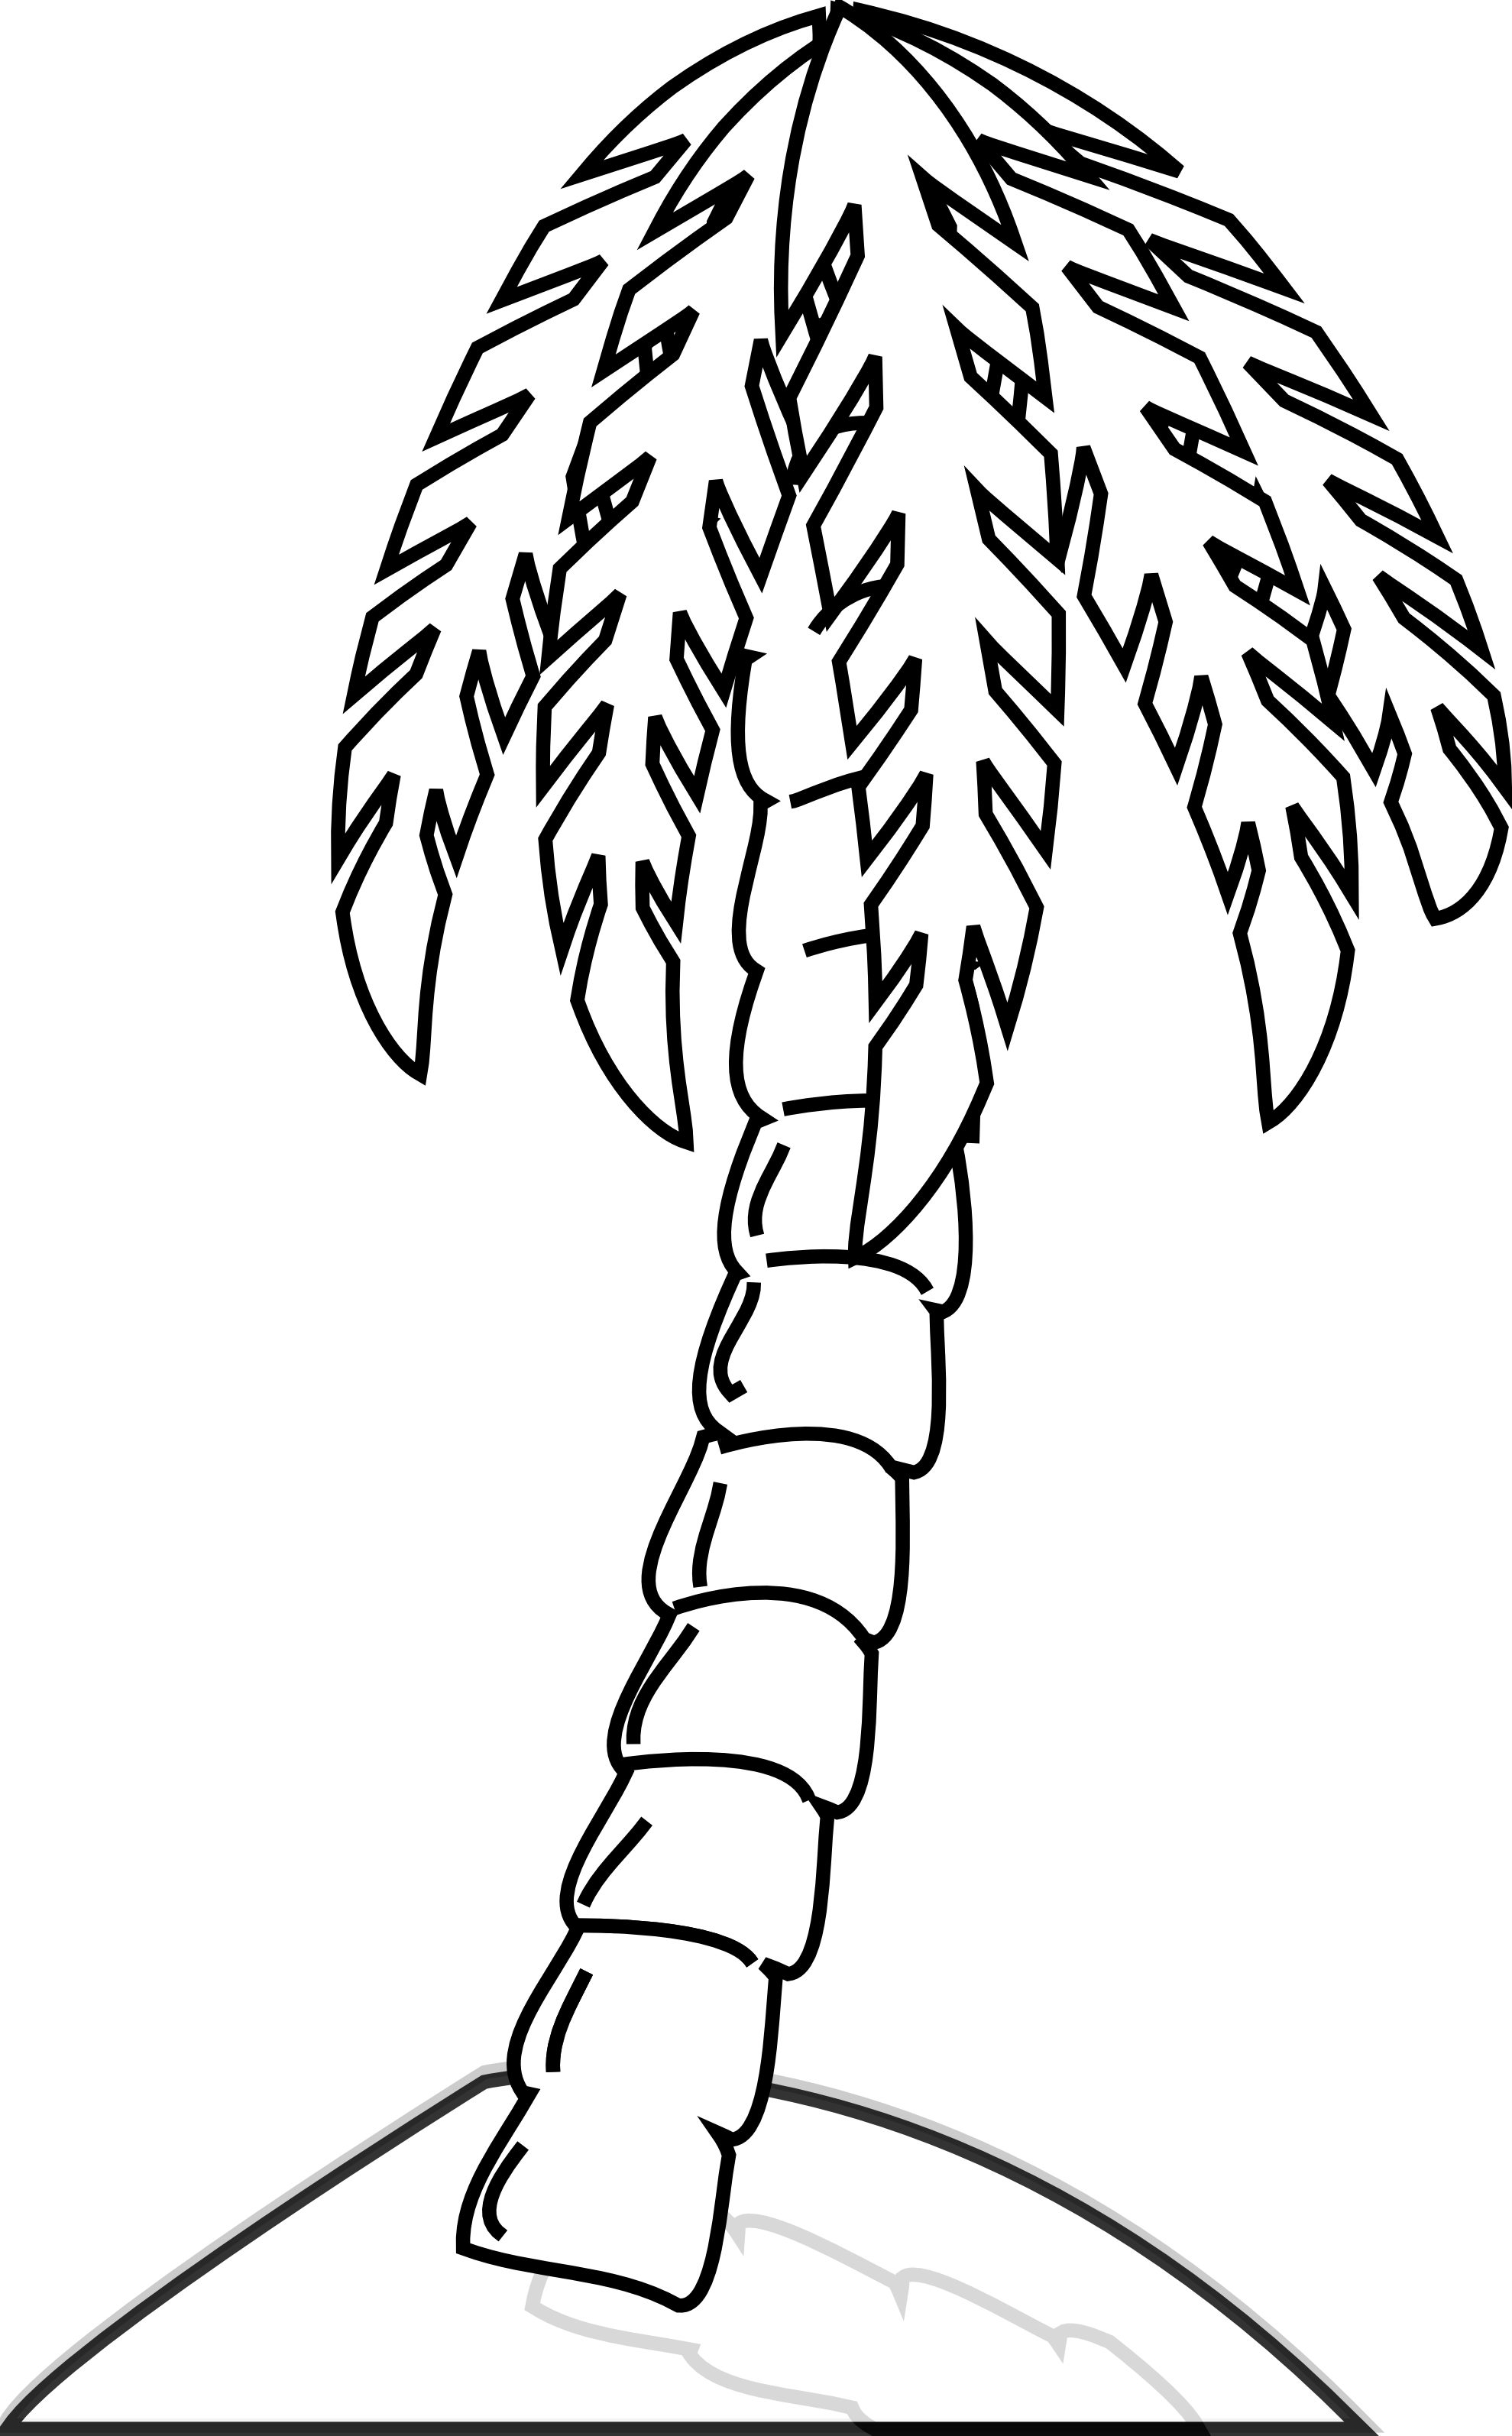 picture library stock Tree panda free images. Palm trees clipart black and white